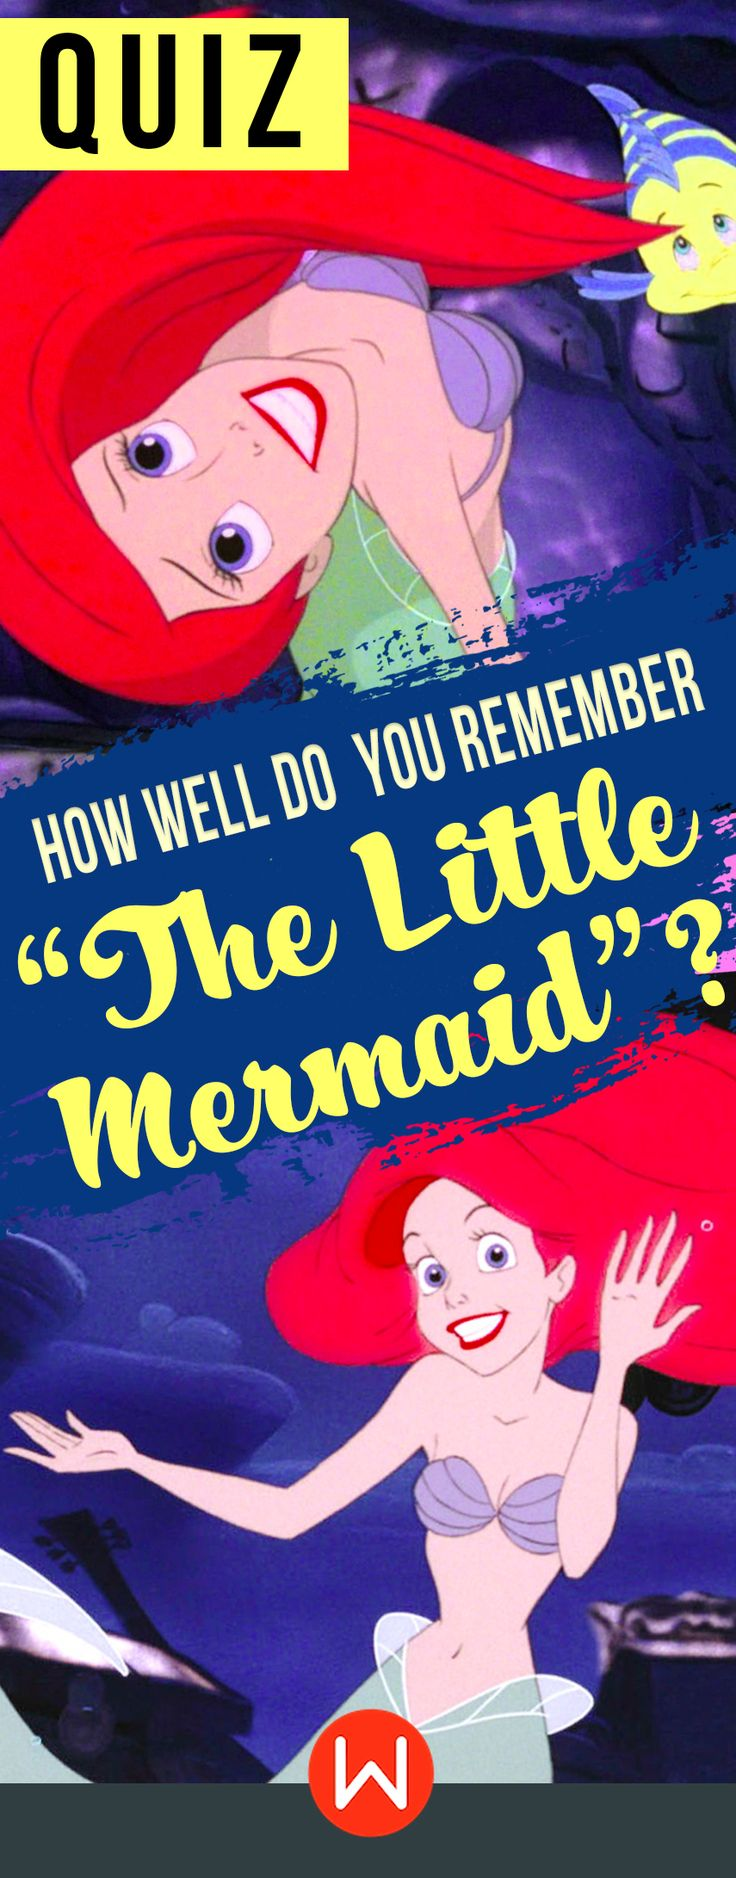 Quiz: How well do you remember The Little Mermaid? Disney Little Mermaid trivia, Little Mermaid quiz, Princess Ariel, Ursula, Sebastian, buzzfeed quizzes, fun Disney test... Do you know everything about The Little Mermaid? Prove it!